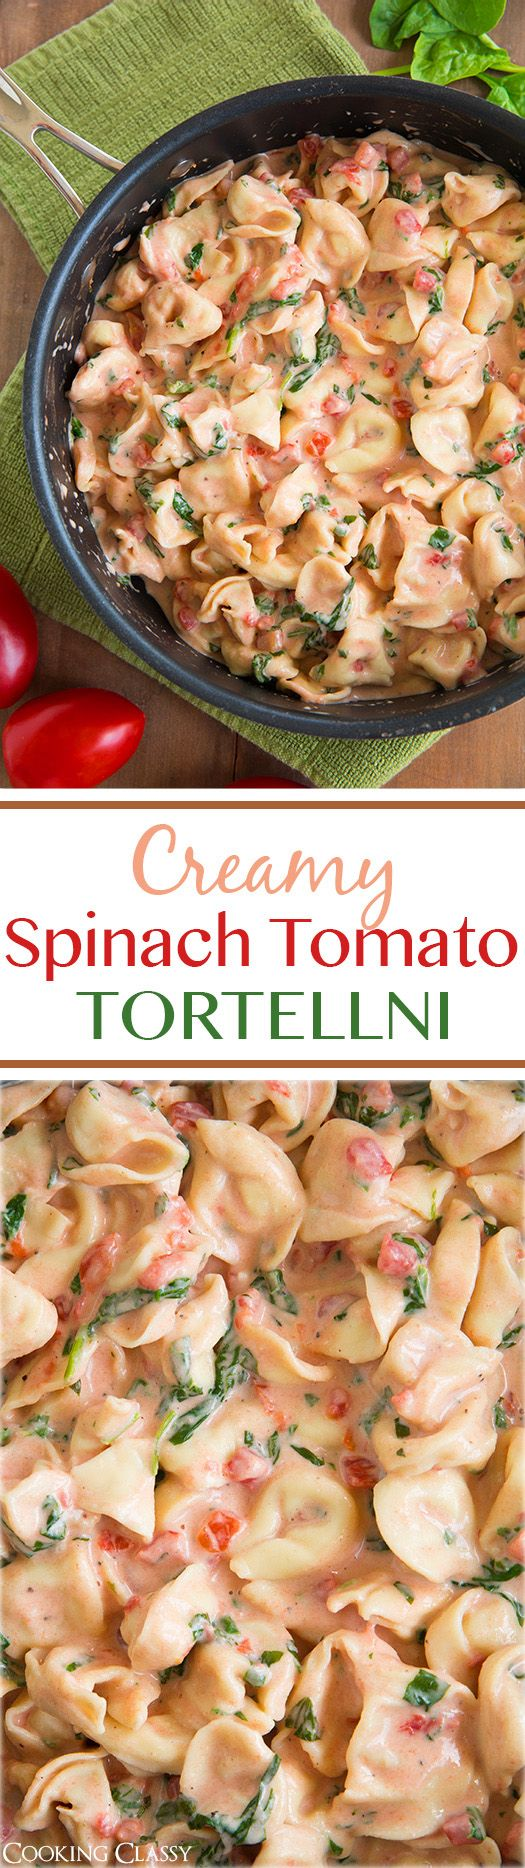 Recipe Tortellini run Creamy Tortellini  Tomato Spinach     free and Spinach store Tomatoes us